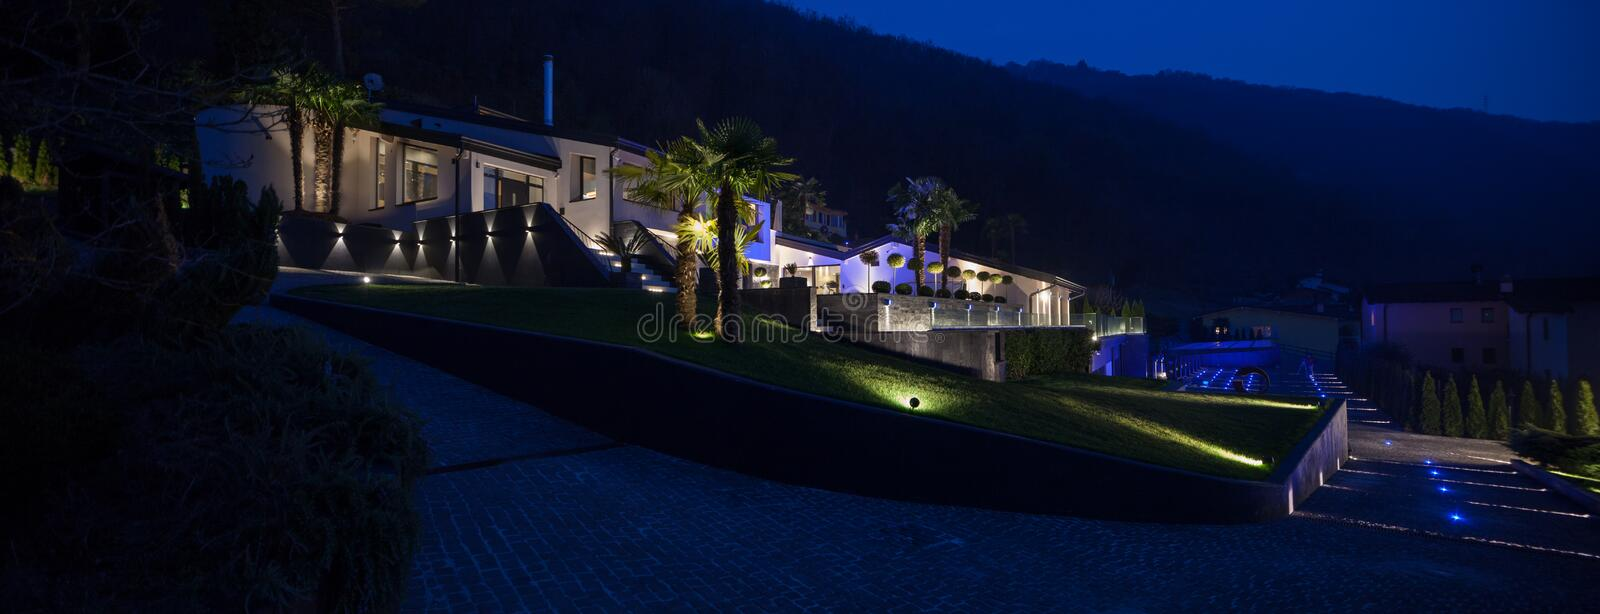 Exterior view of a modern luxury villa, nocturnal scene stock images